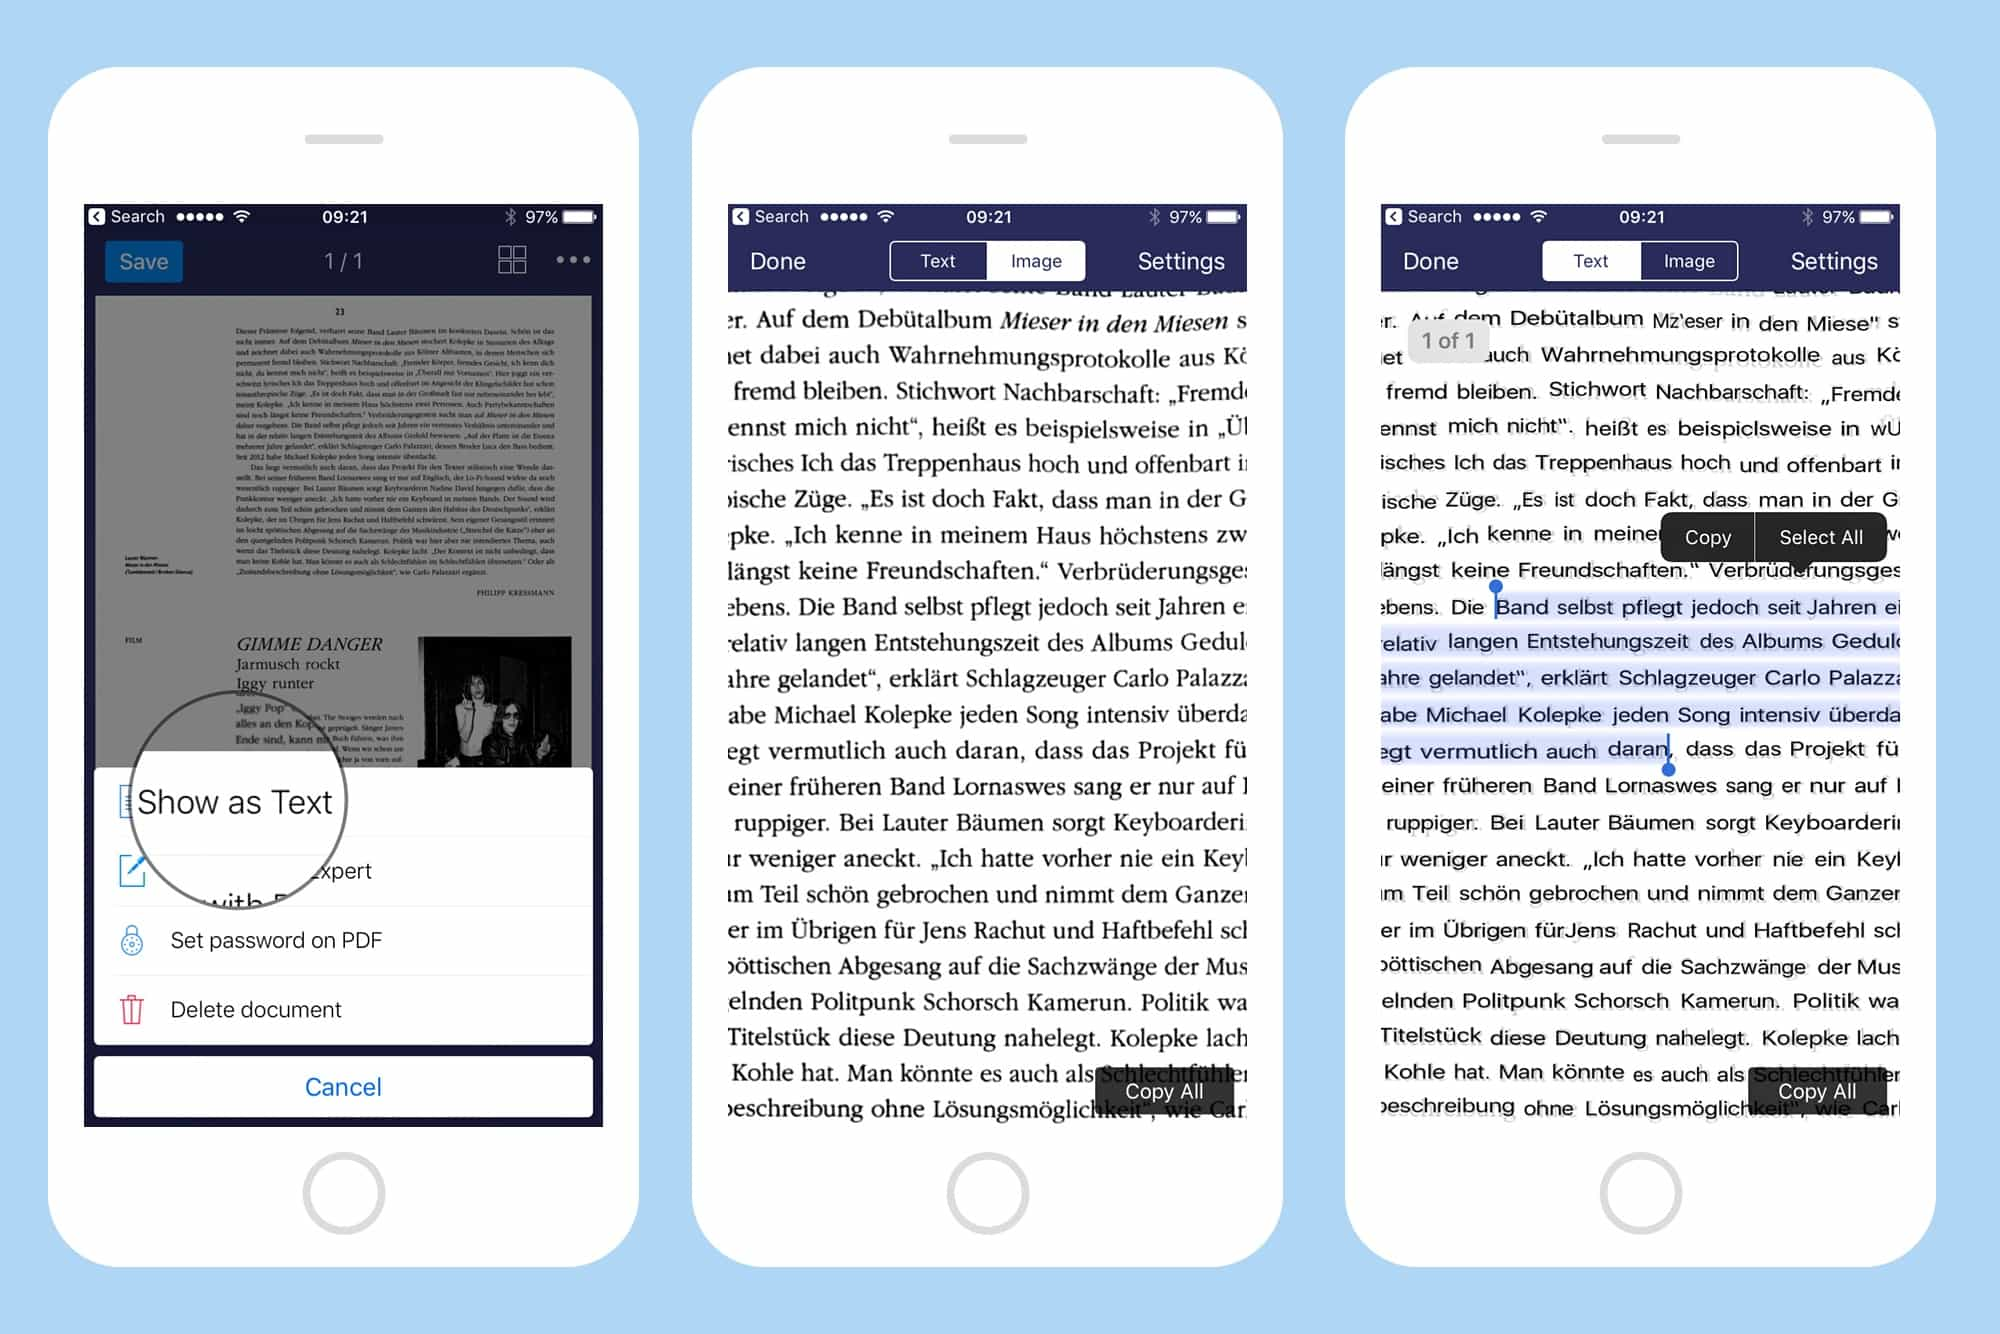 Scanned text is turned into editable text automatically.